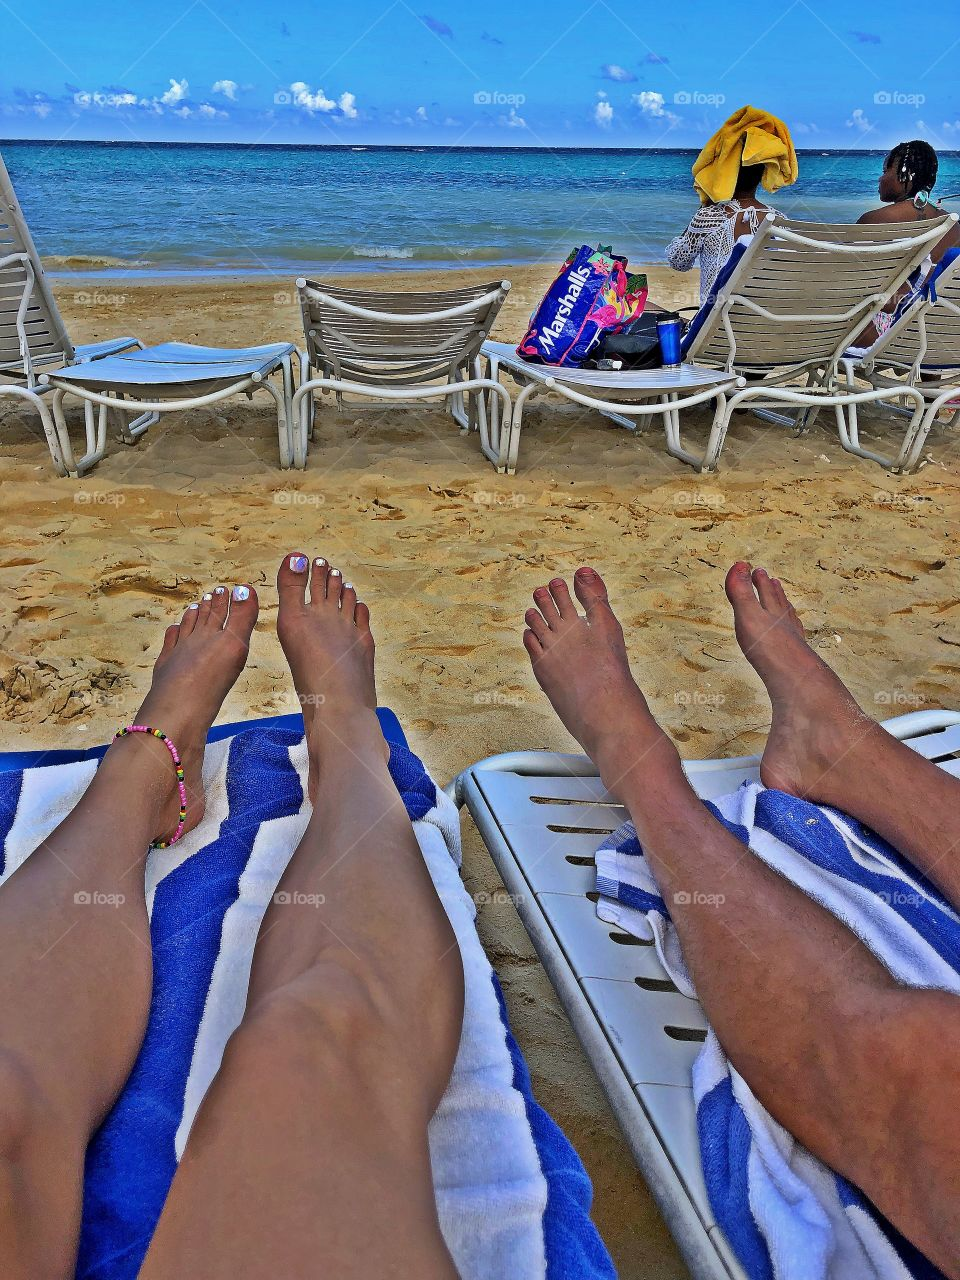 Vacay with the hubby in Ocho Rios, Jamaica.  Summertime in December 2018.  Such a beautiful day & memory.